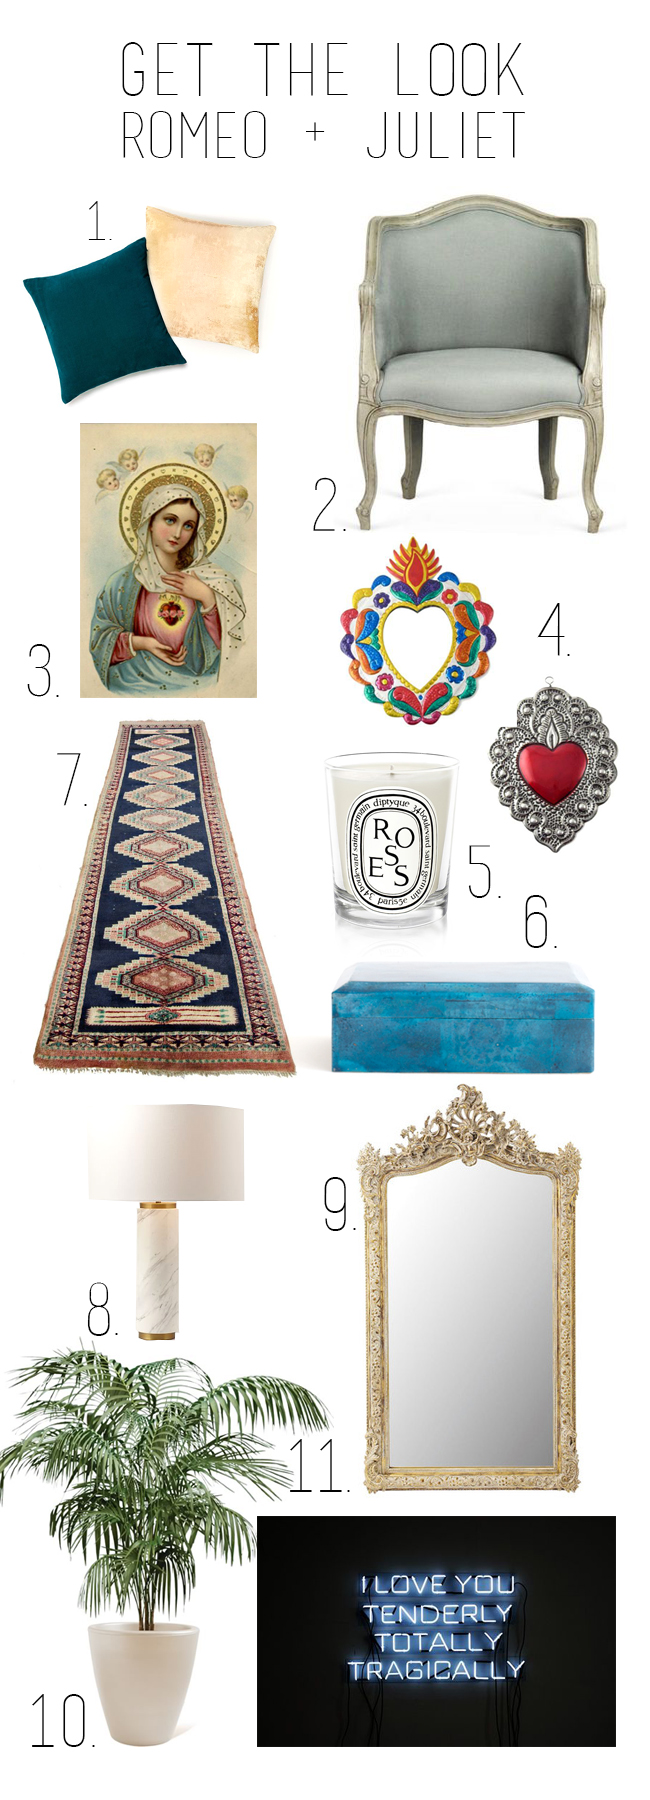 Get the look: Romeo + Juliet // Interior inspiration from Baz Luhrmann's 1996 masterpiece - Get the look